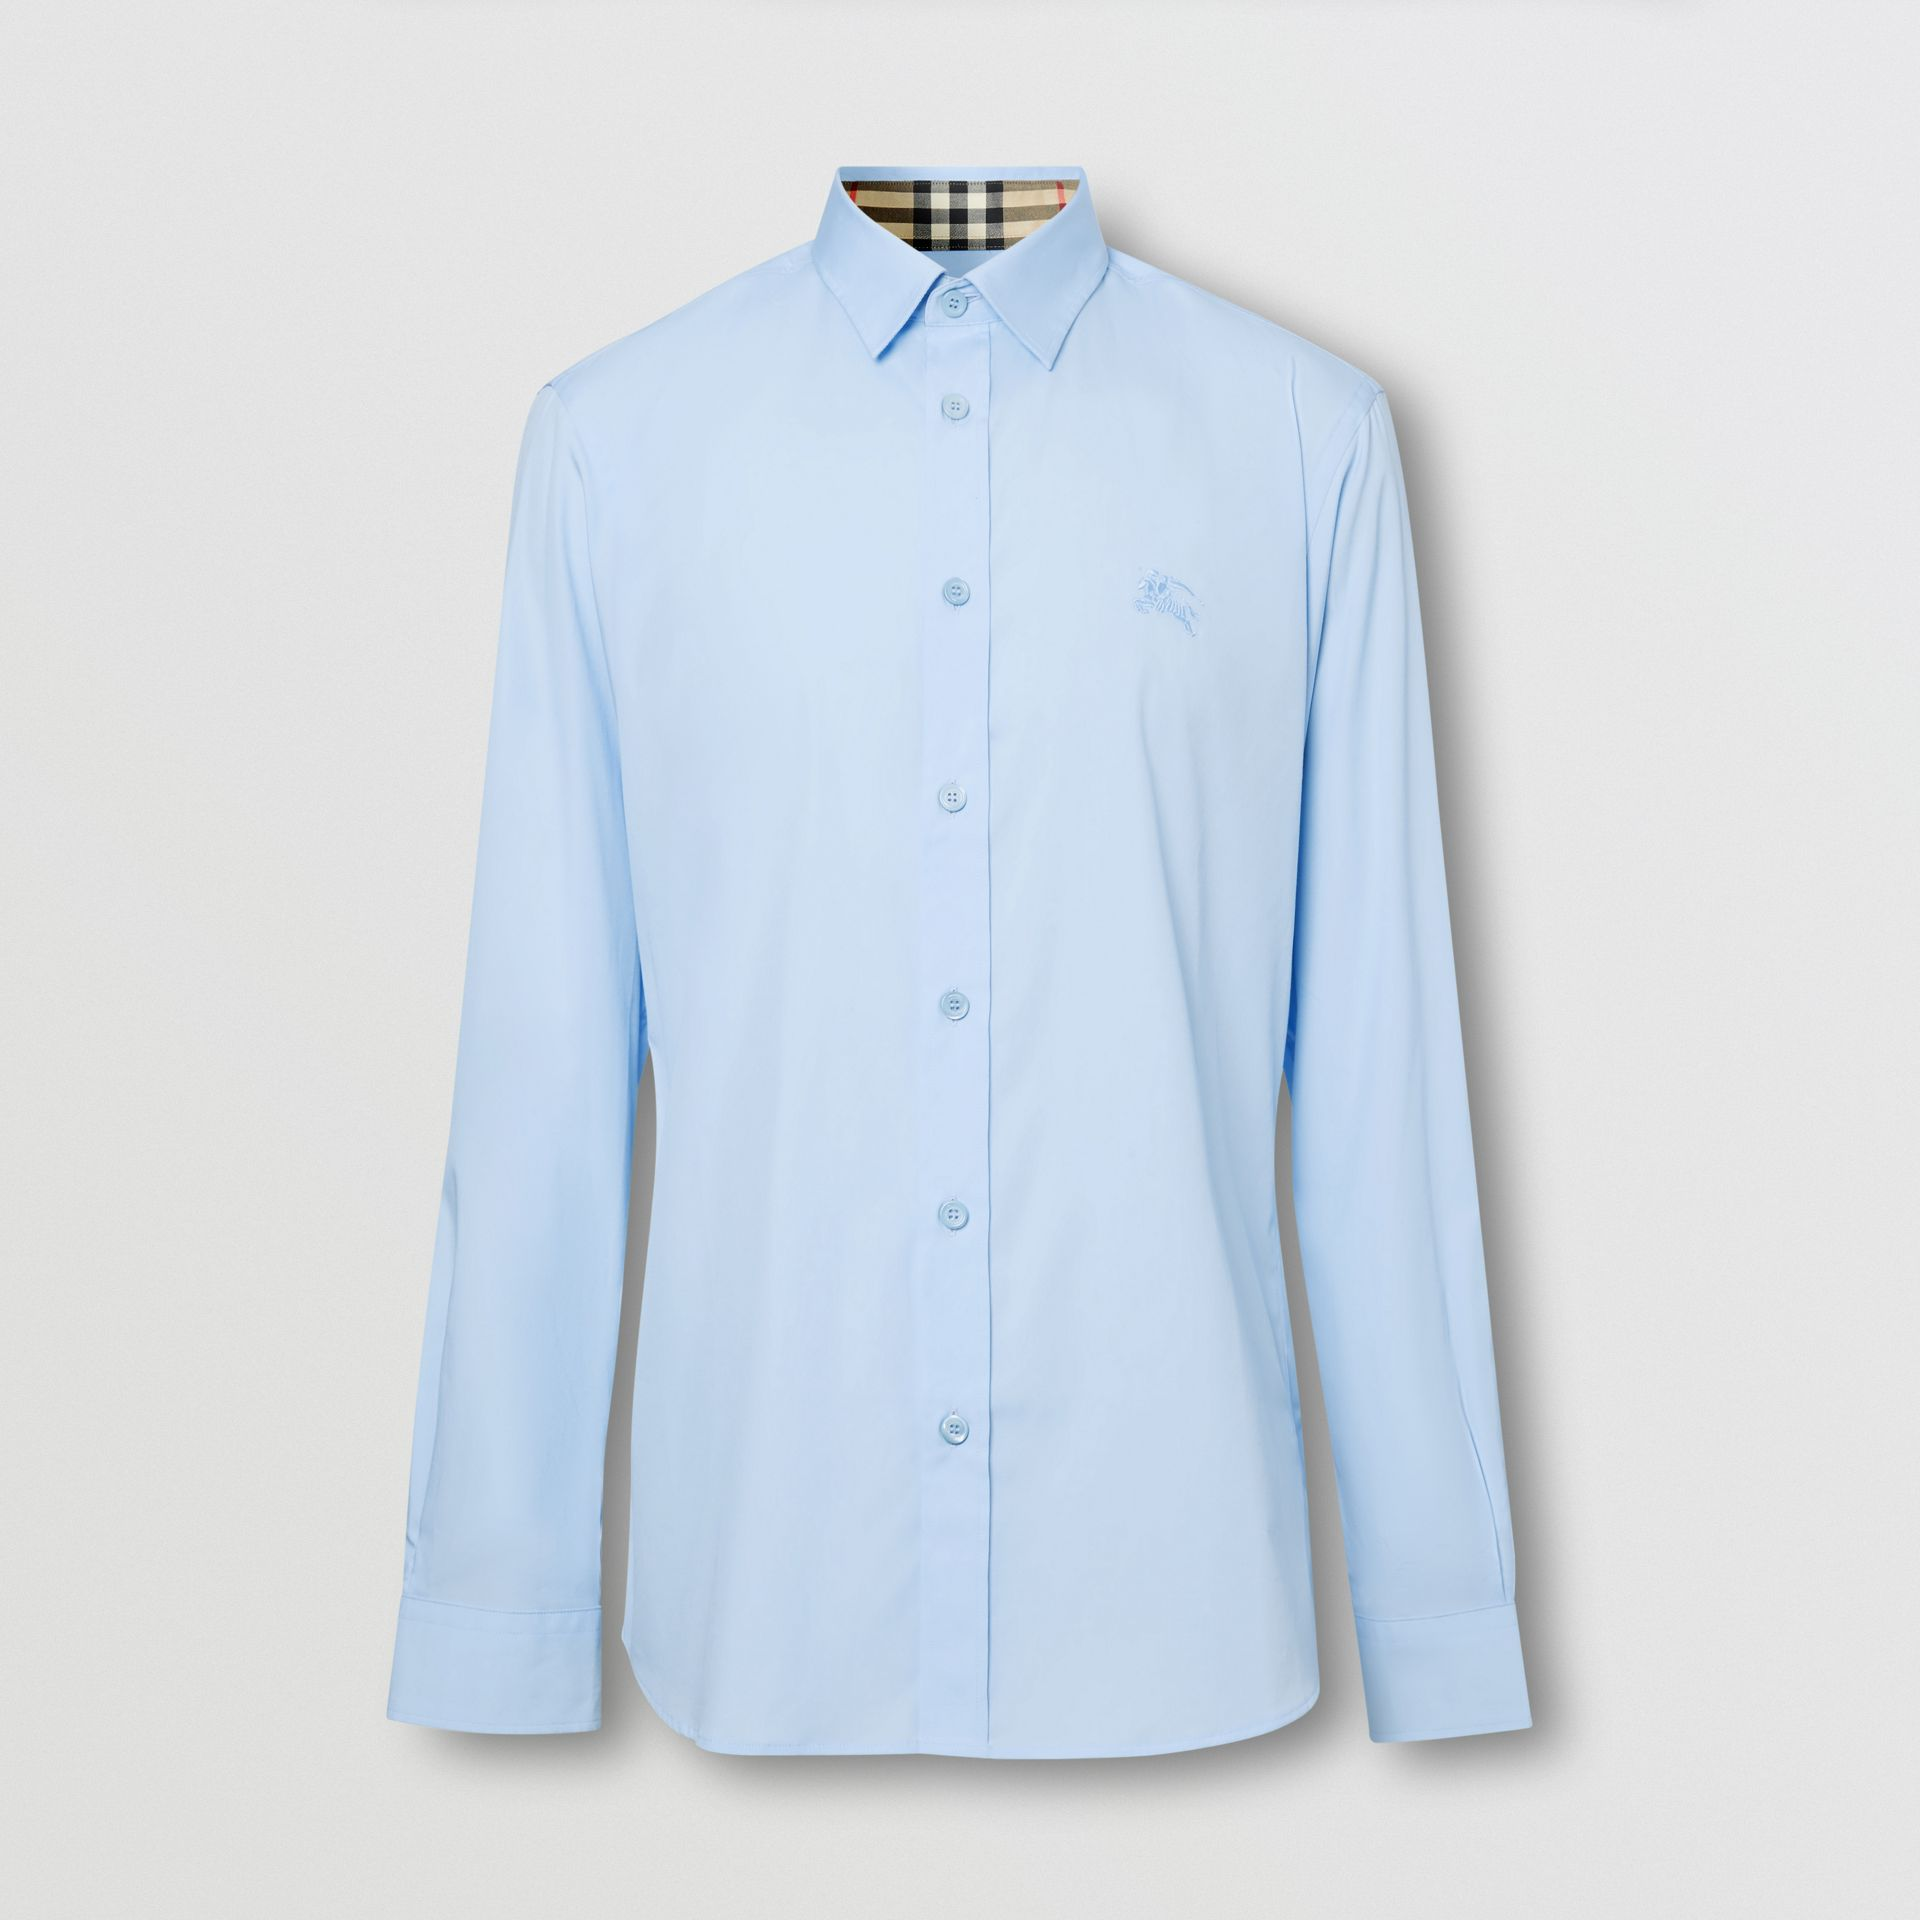 Classic Fit Embroidered EKD Cotton Oxford Shirt in Sky Blue - Men | Burberry - gallery image 6